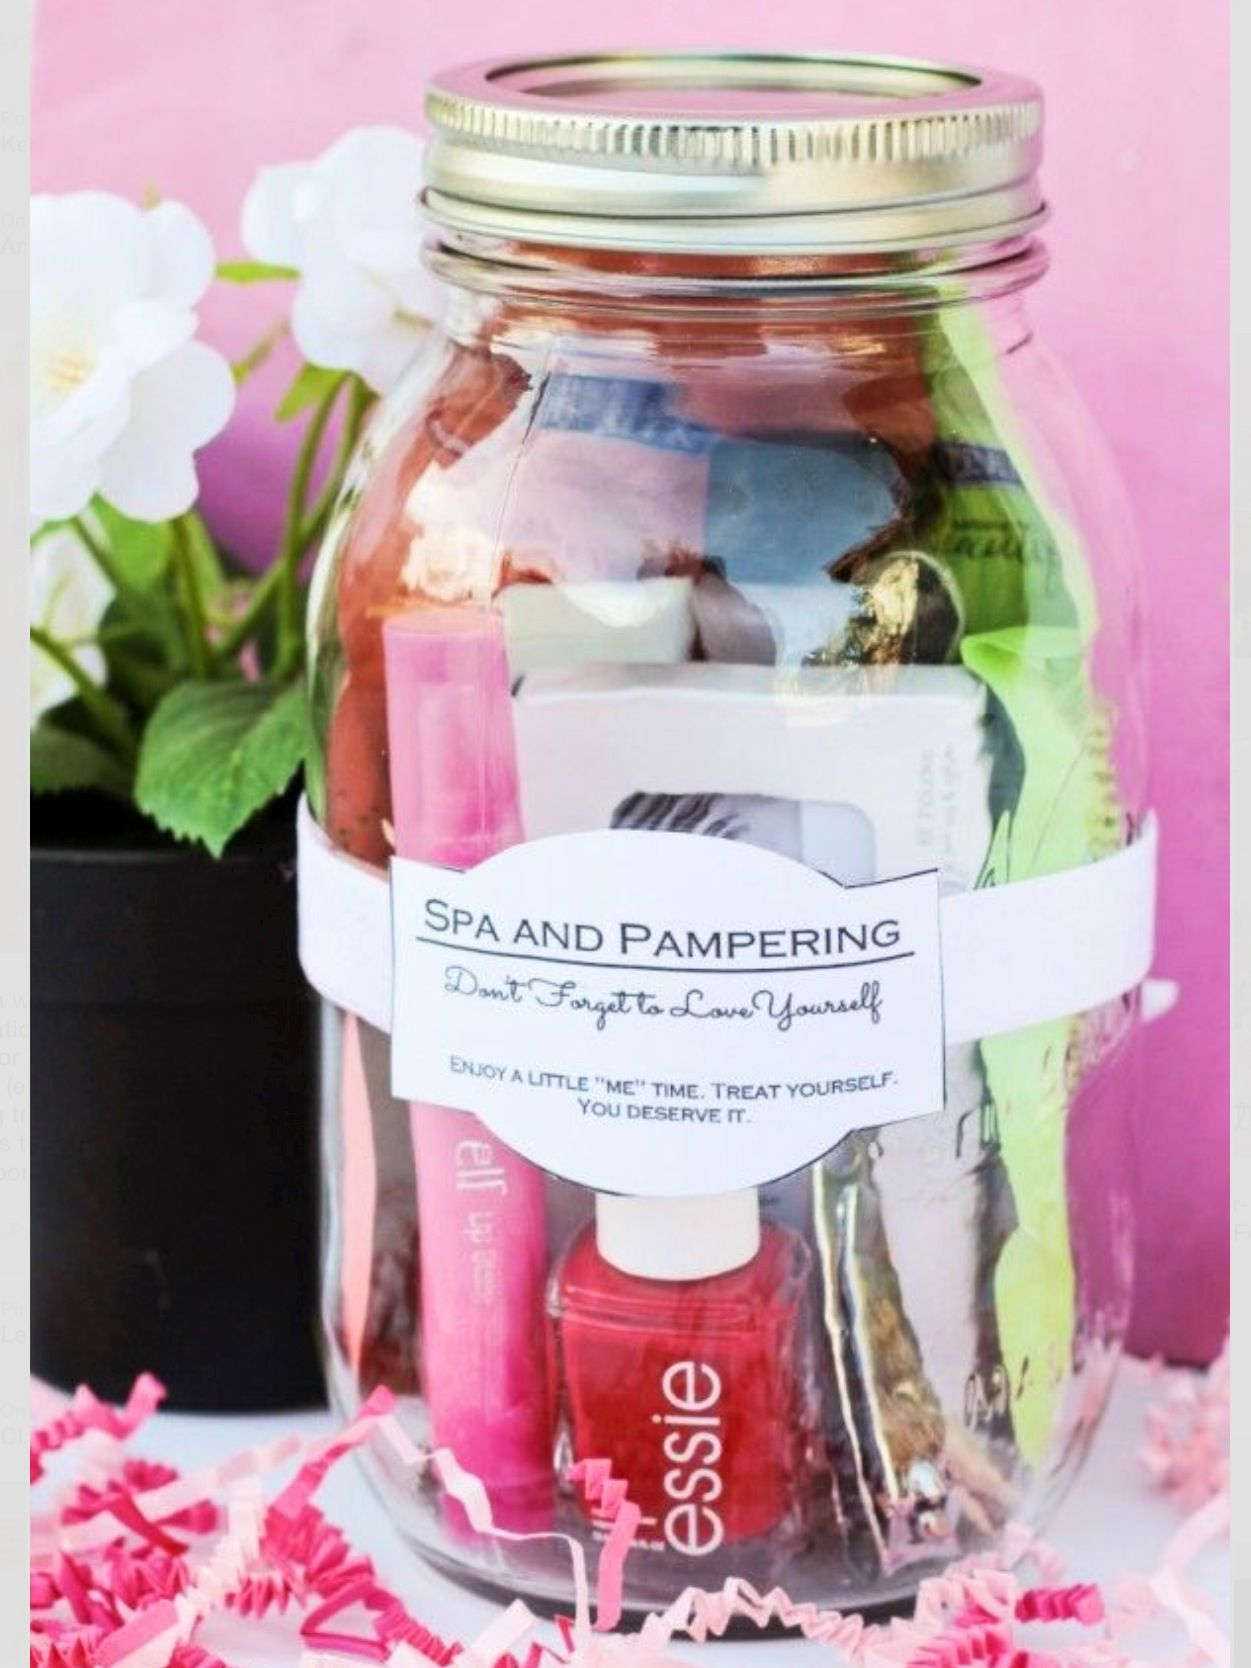 This is a really cute idea need to think about what to use it for do it yourself gift basket ideas for all occassions pampering spa in a mason jar gift idea and free printable gift jar label tags via classy clutter solutioingenieria Images